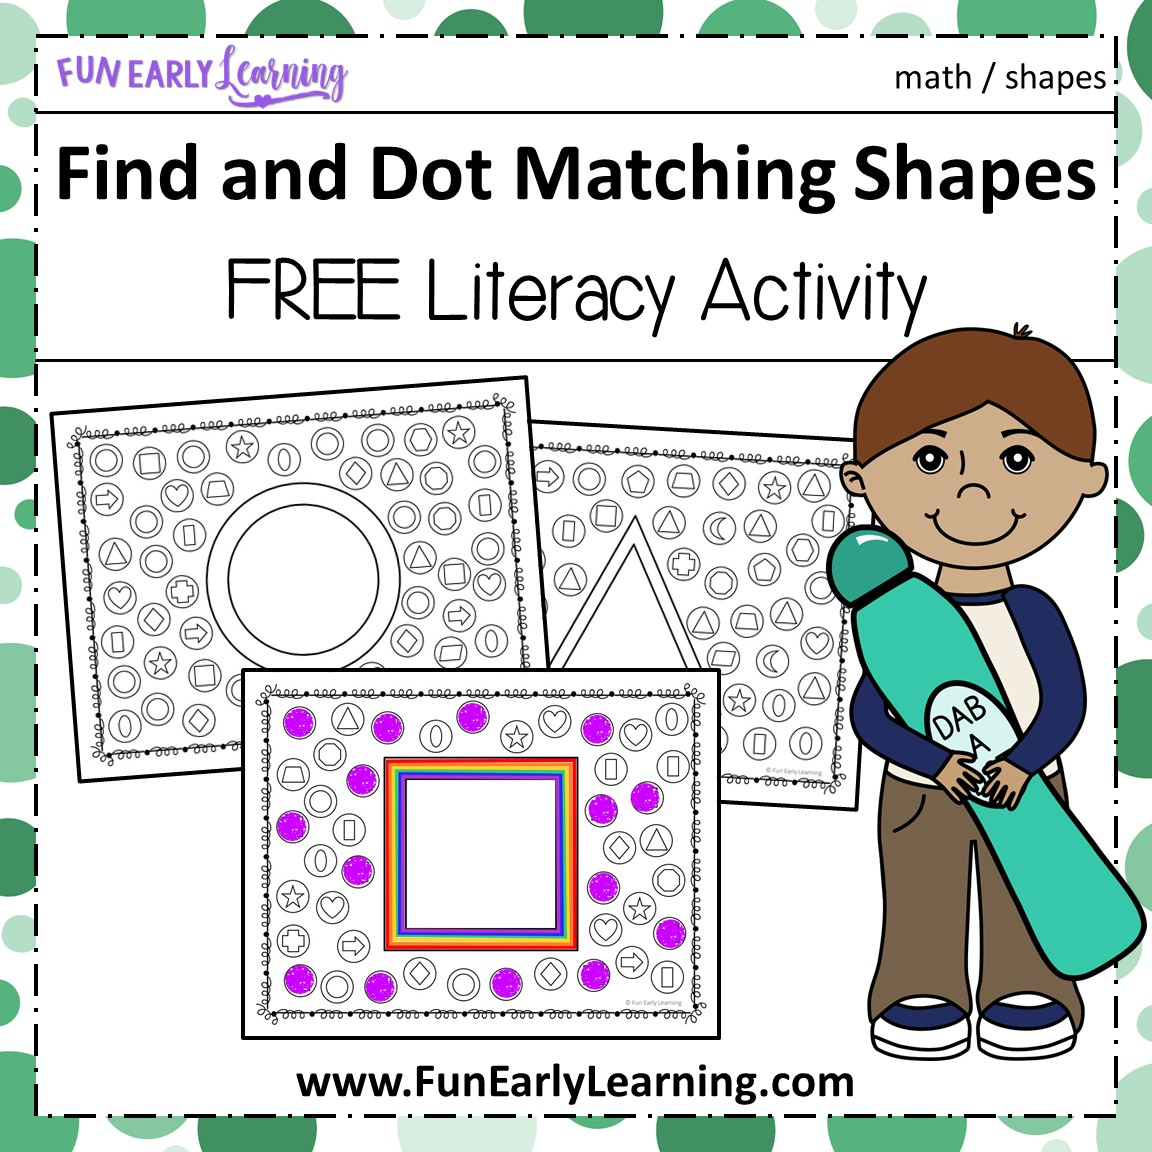 Find And Dot Matching Shapes Early Childhood Math Activity